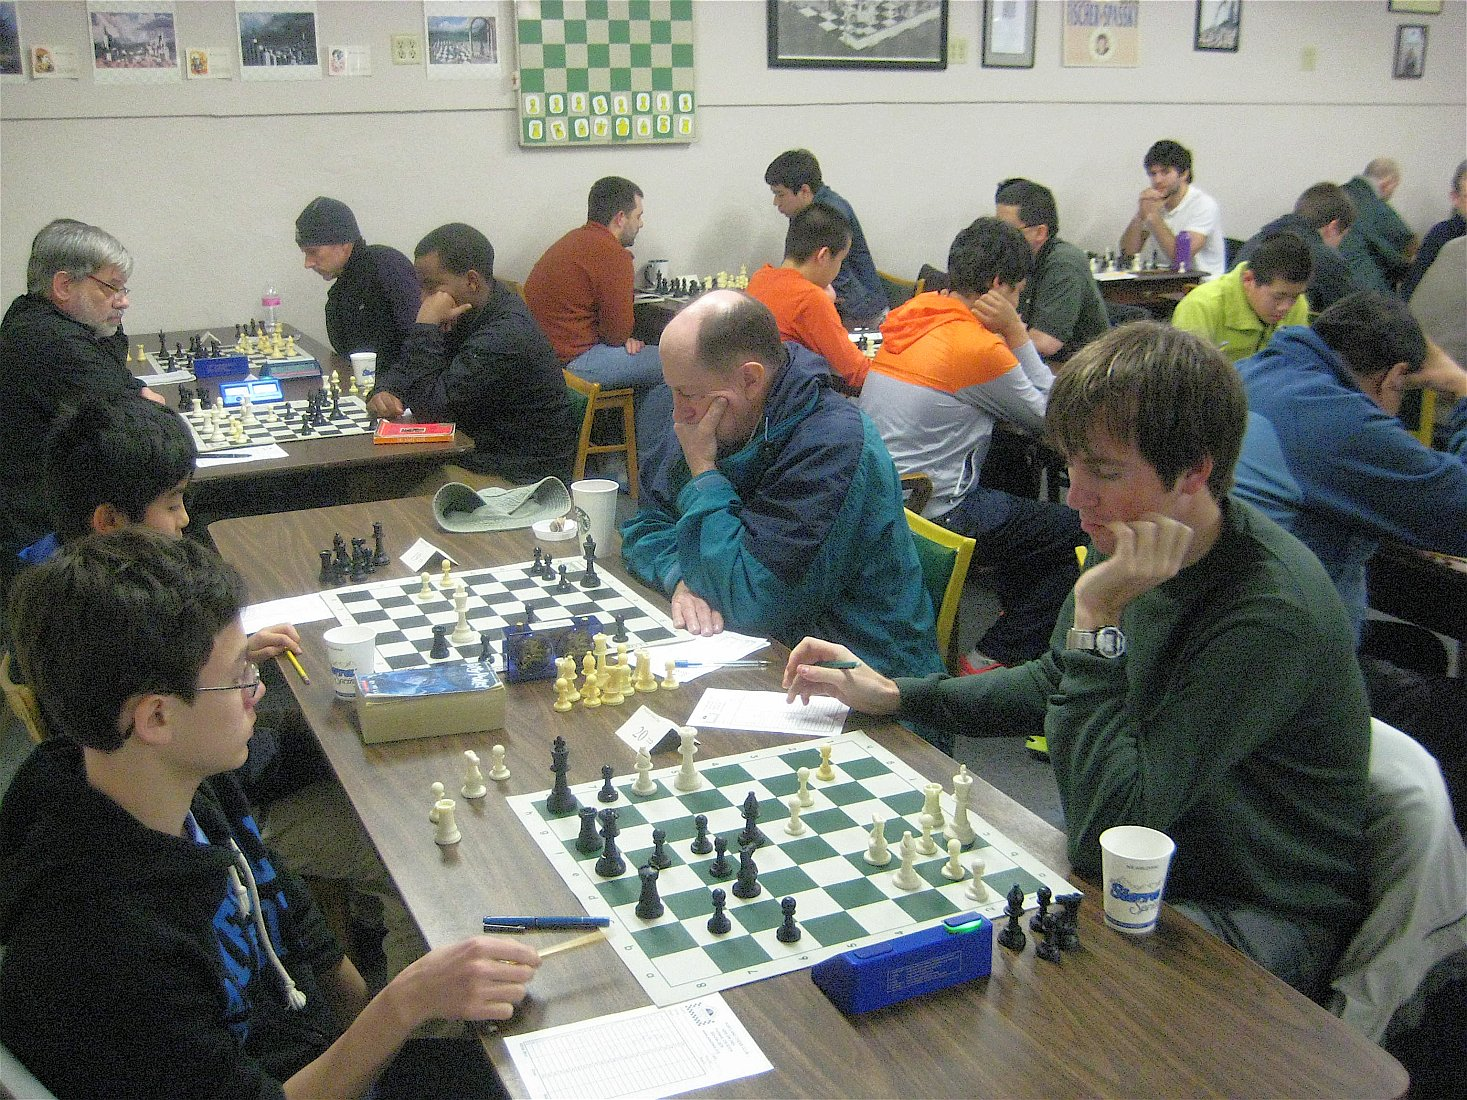 The Portland Chess Club during the 2014 Portland Spring Open. Photo Credit: Brian Berger